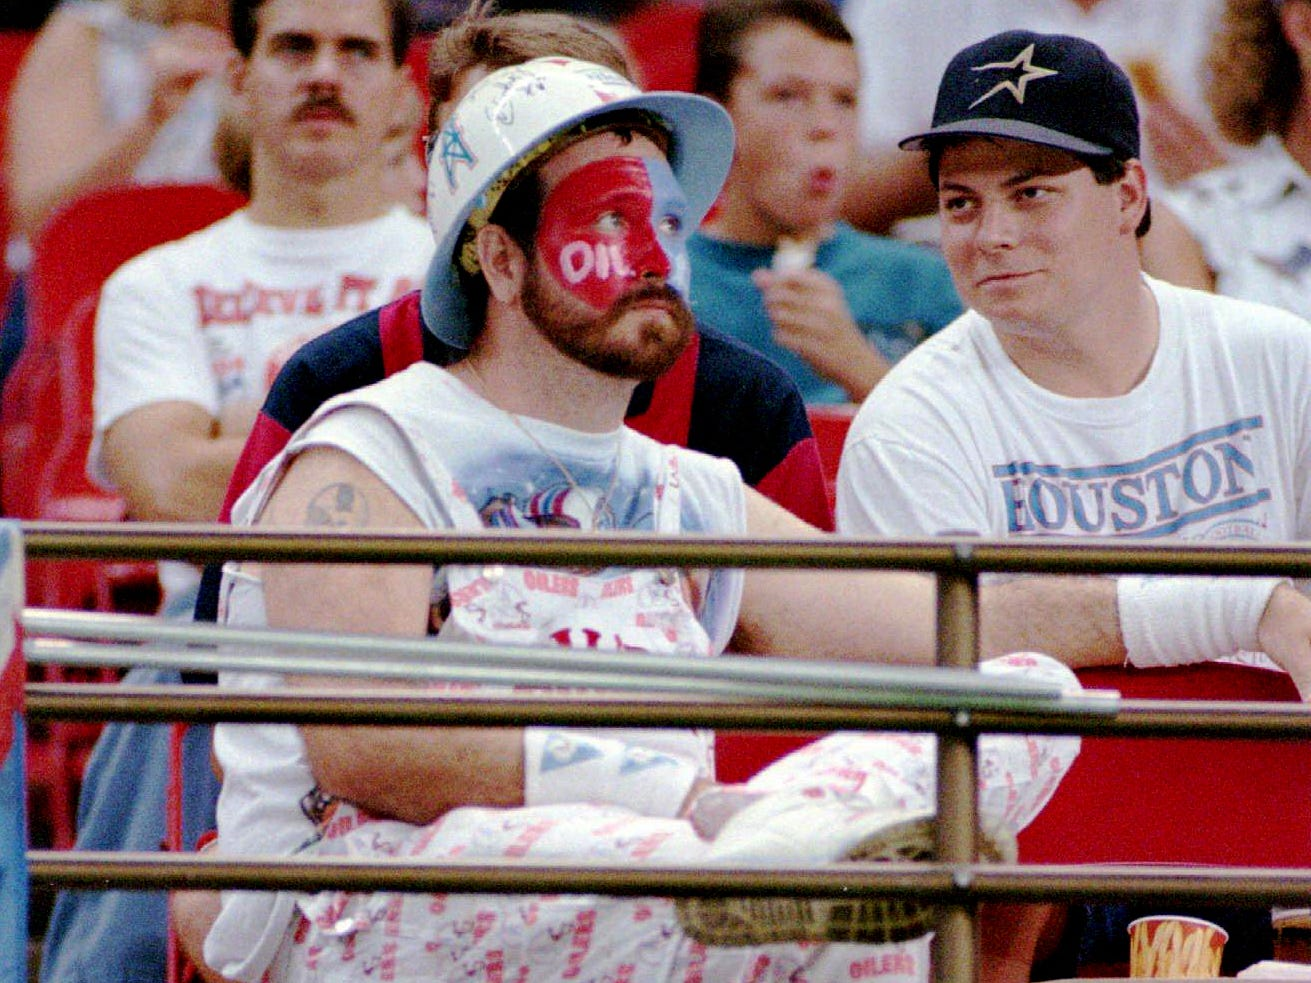 Houston Oilers fan Chris Lockridge, 30, makes public his feelings about the possibility of a team move to Nashville with a sign in the Astrodome before a scheduled game against the San Diego Chargers Aug. 19, 1995 in Houston. Lockridge is a 10-year season ticket holder. The game was cancelled 72 minutes after the scheduled start time because of conditions of the playing field.